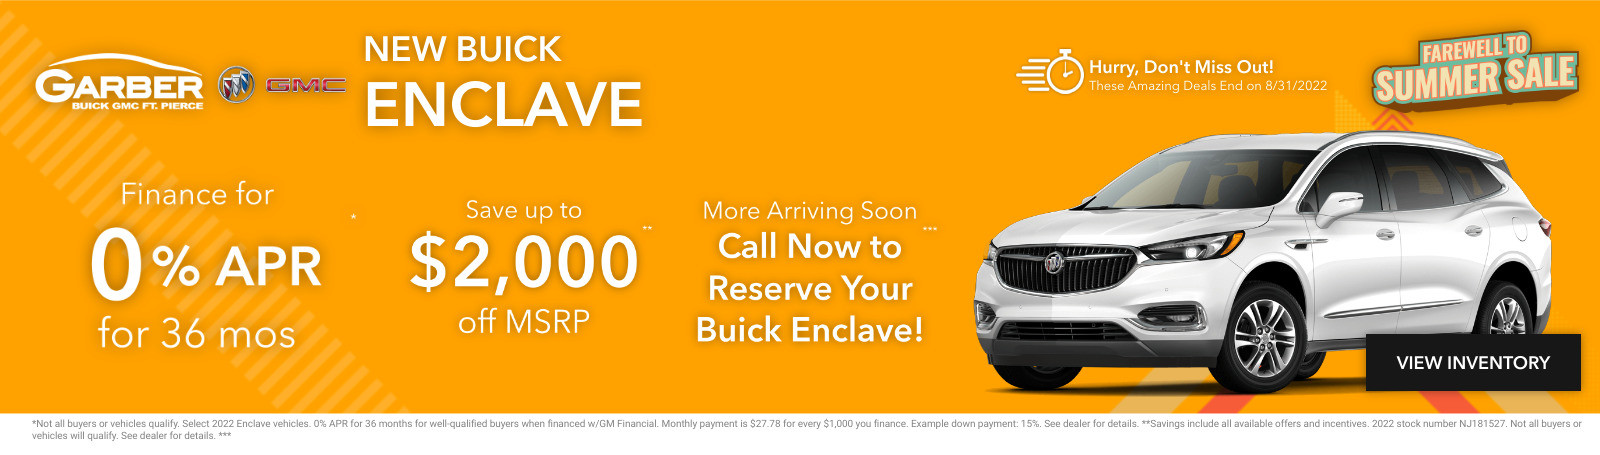 New Buick Enclave Current Deals and Offers in Fort Pierce, FL